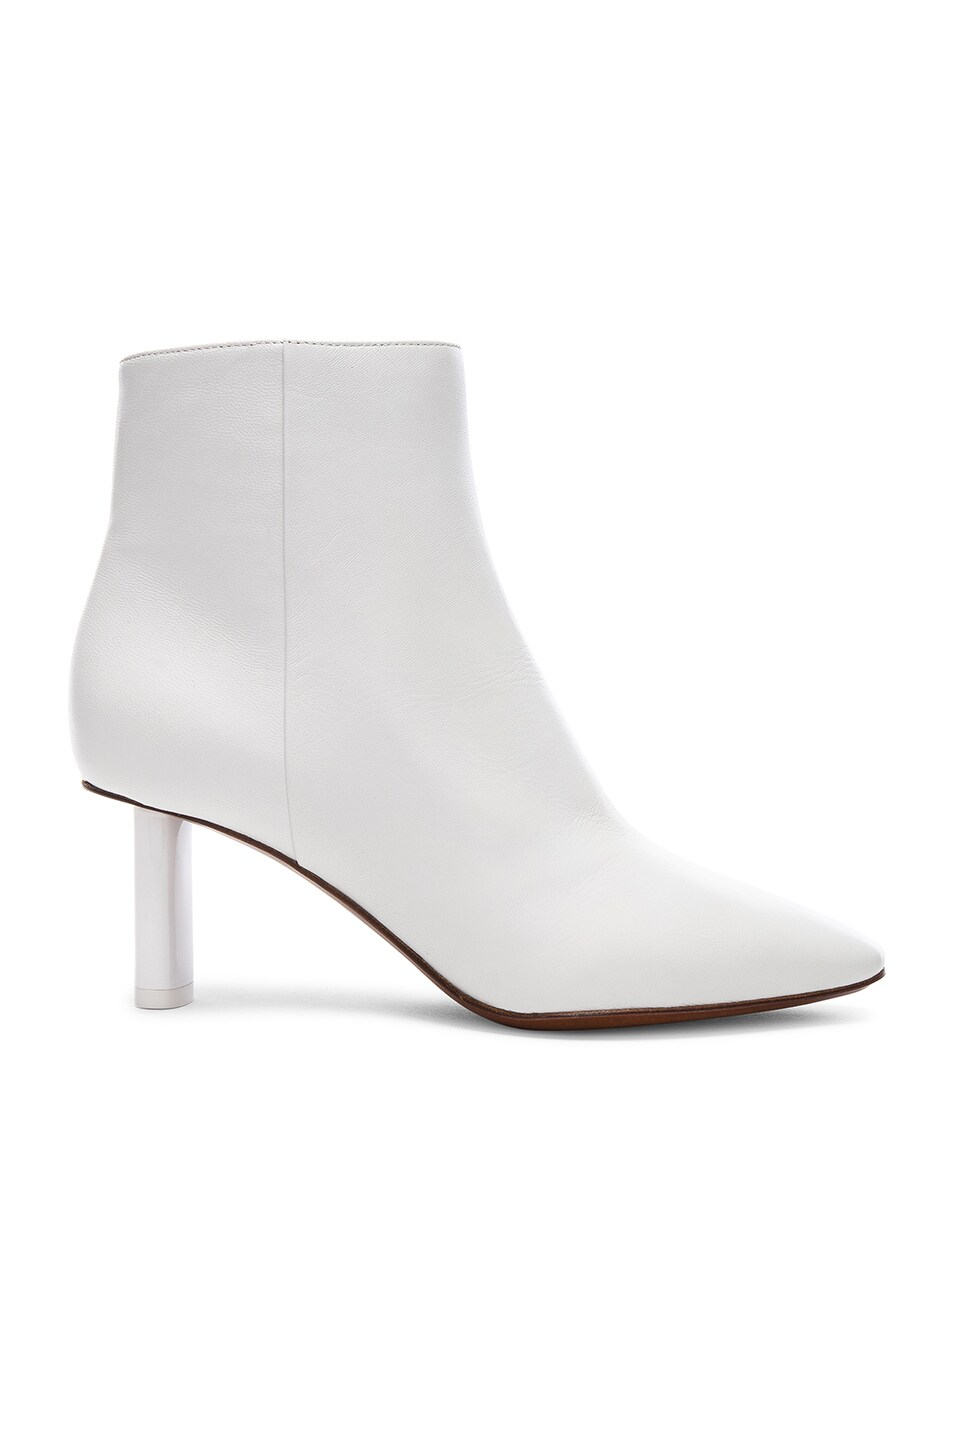 Image 1 of VETEMENTS Leather Ankle Boots in White & White